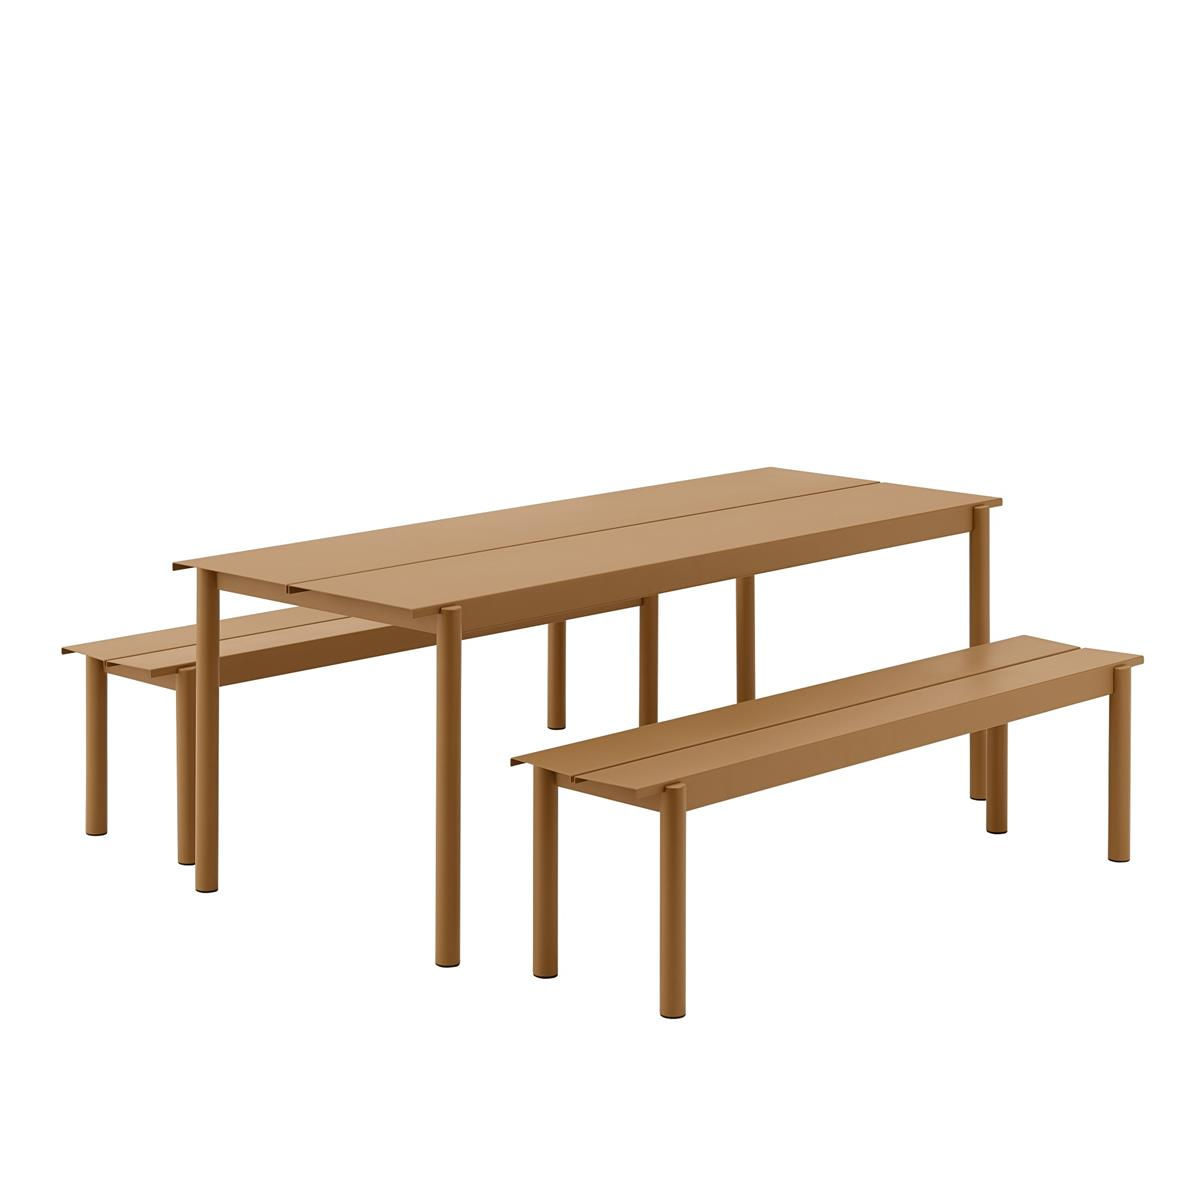 Linear Steel Table 200 x 75 med 2 Stk. Linear Steel Bench L:170. Burnt Orange.